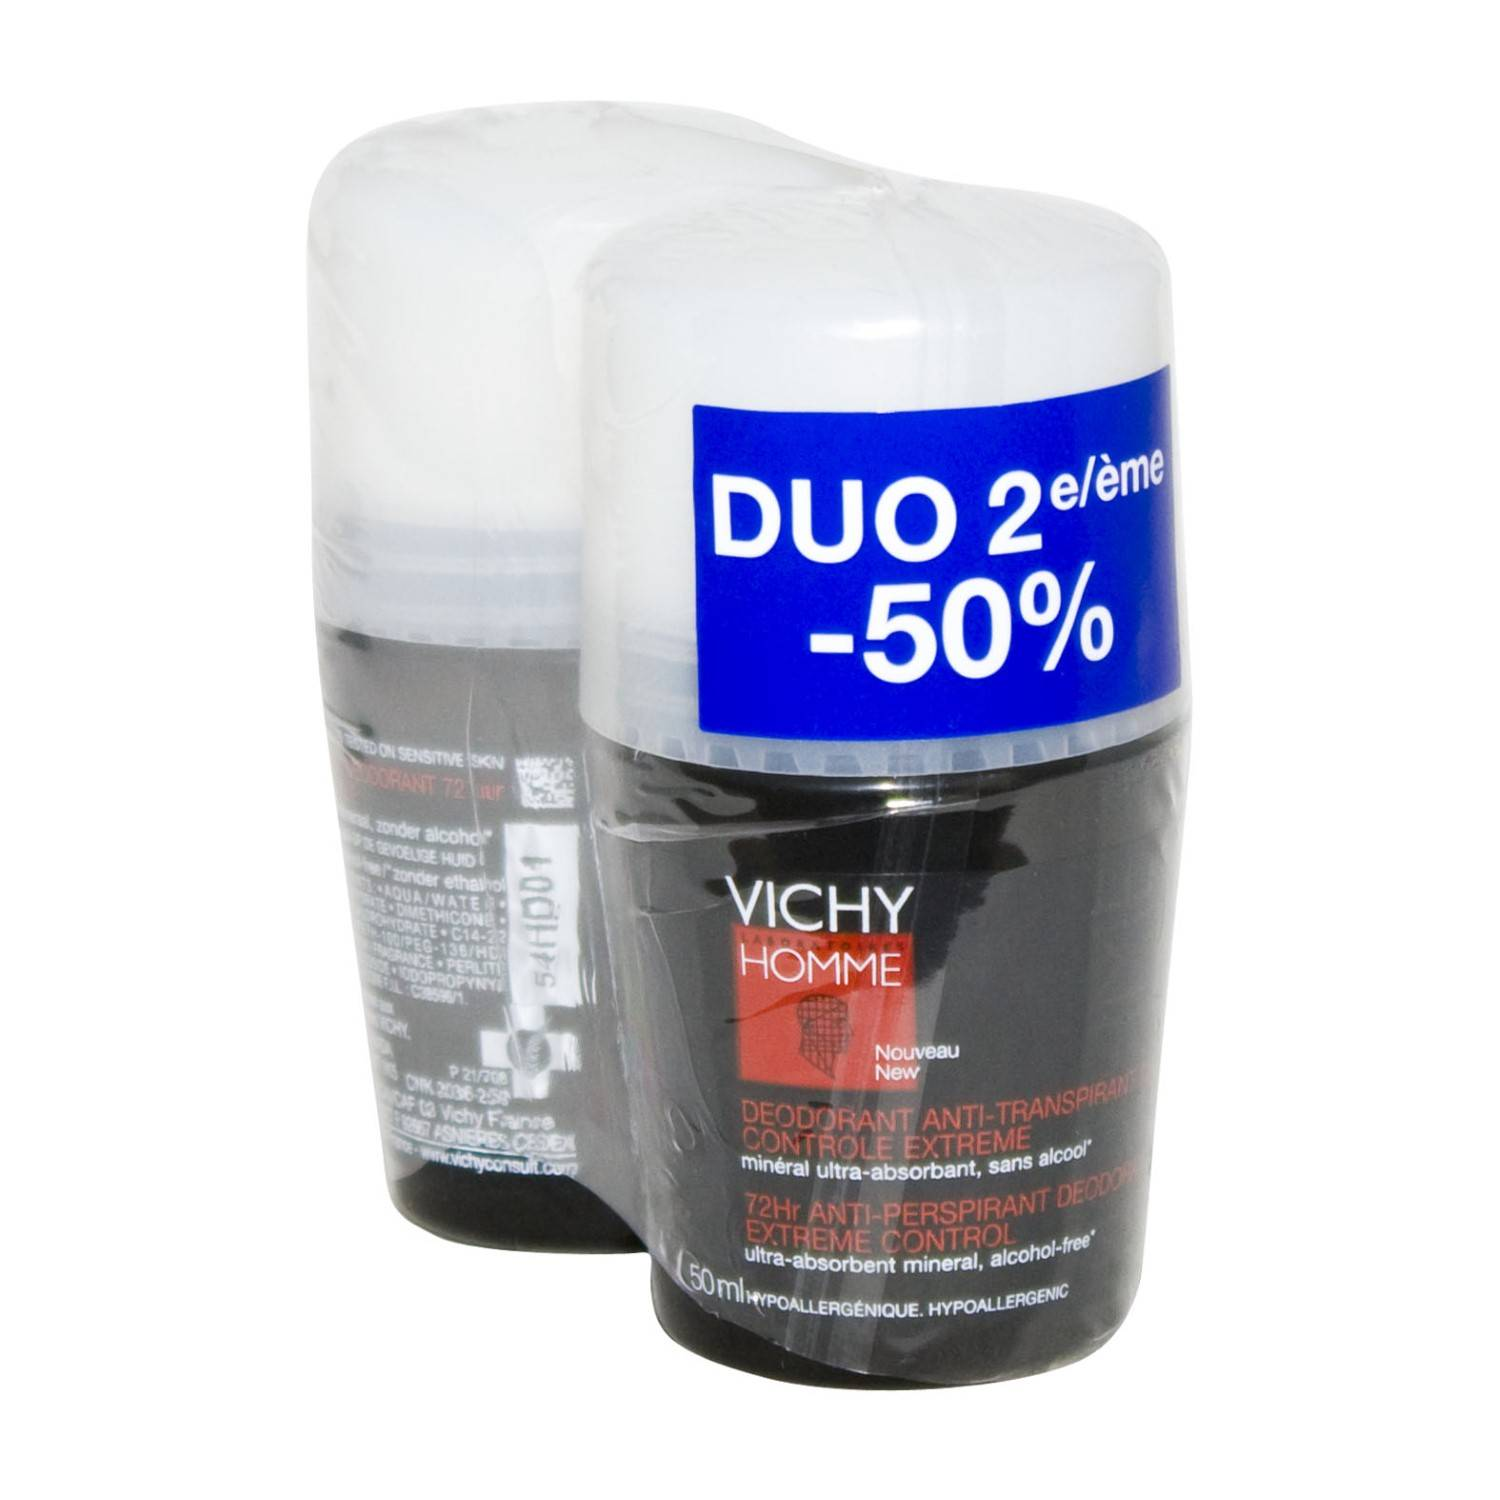 Vichy Homme Déodorant Anti Transpirant 72H Controle Extreme Roll-On 2 x 50 ml Prix Promo